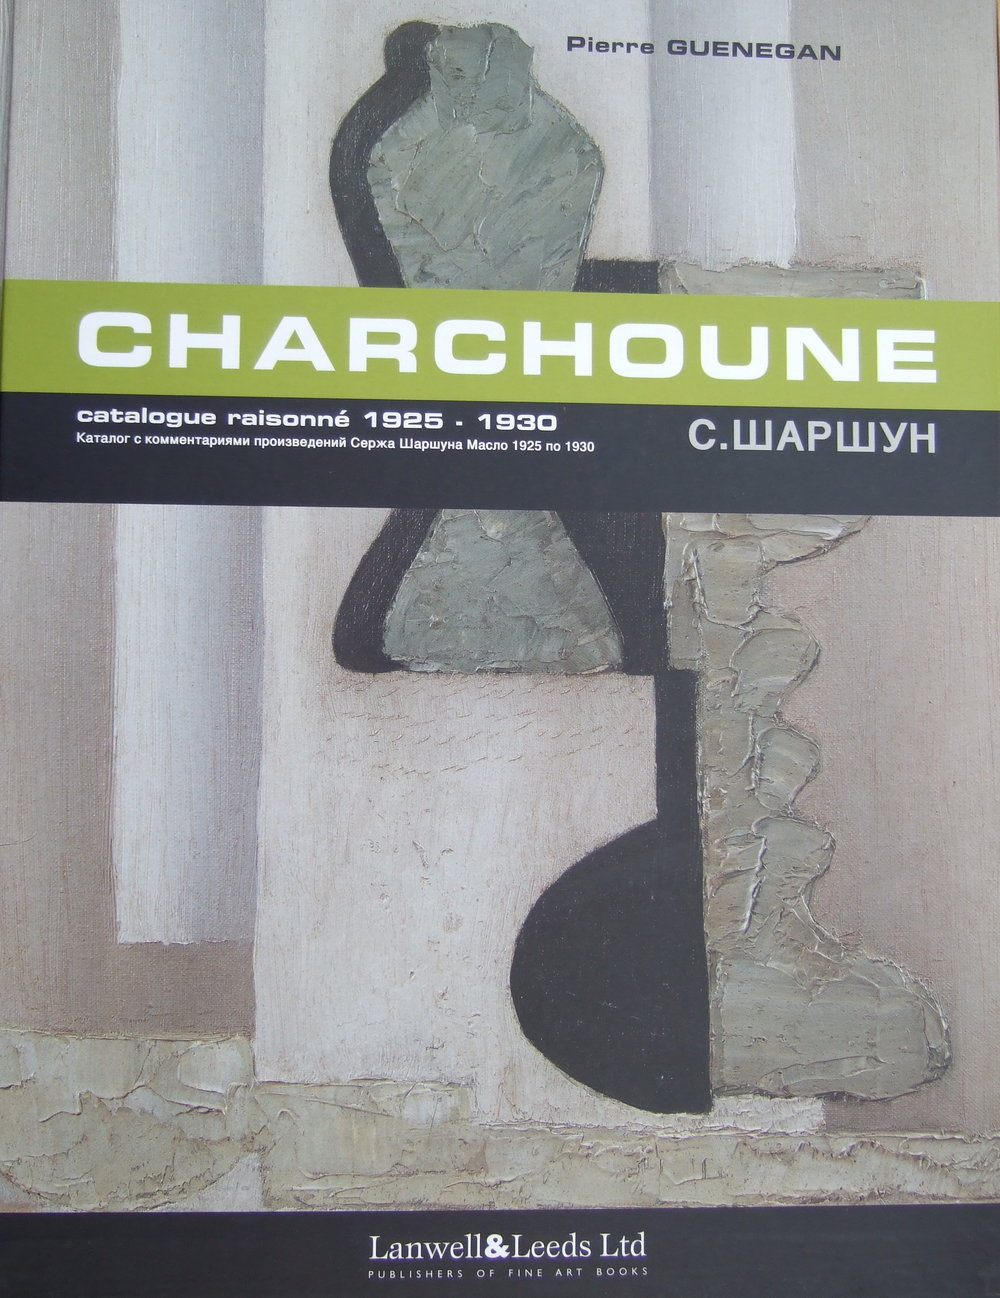 Charchoune Catalogue-raisonne 1925 - 1930 by Pierre Guenegan. Volume 2.